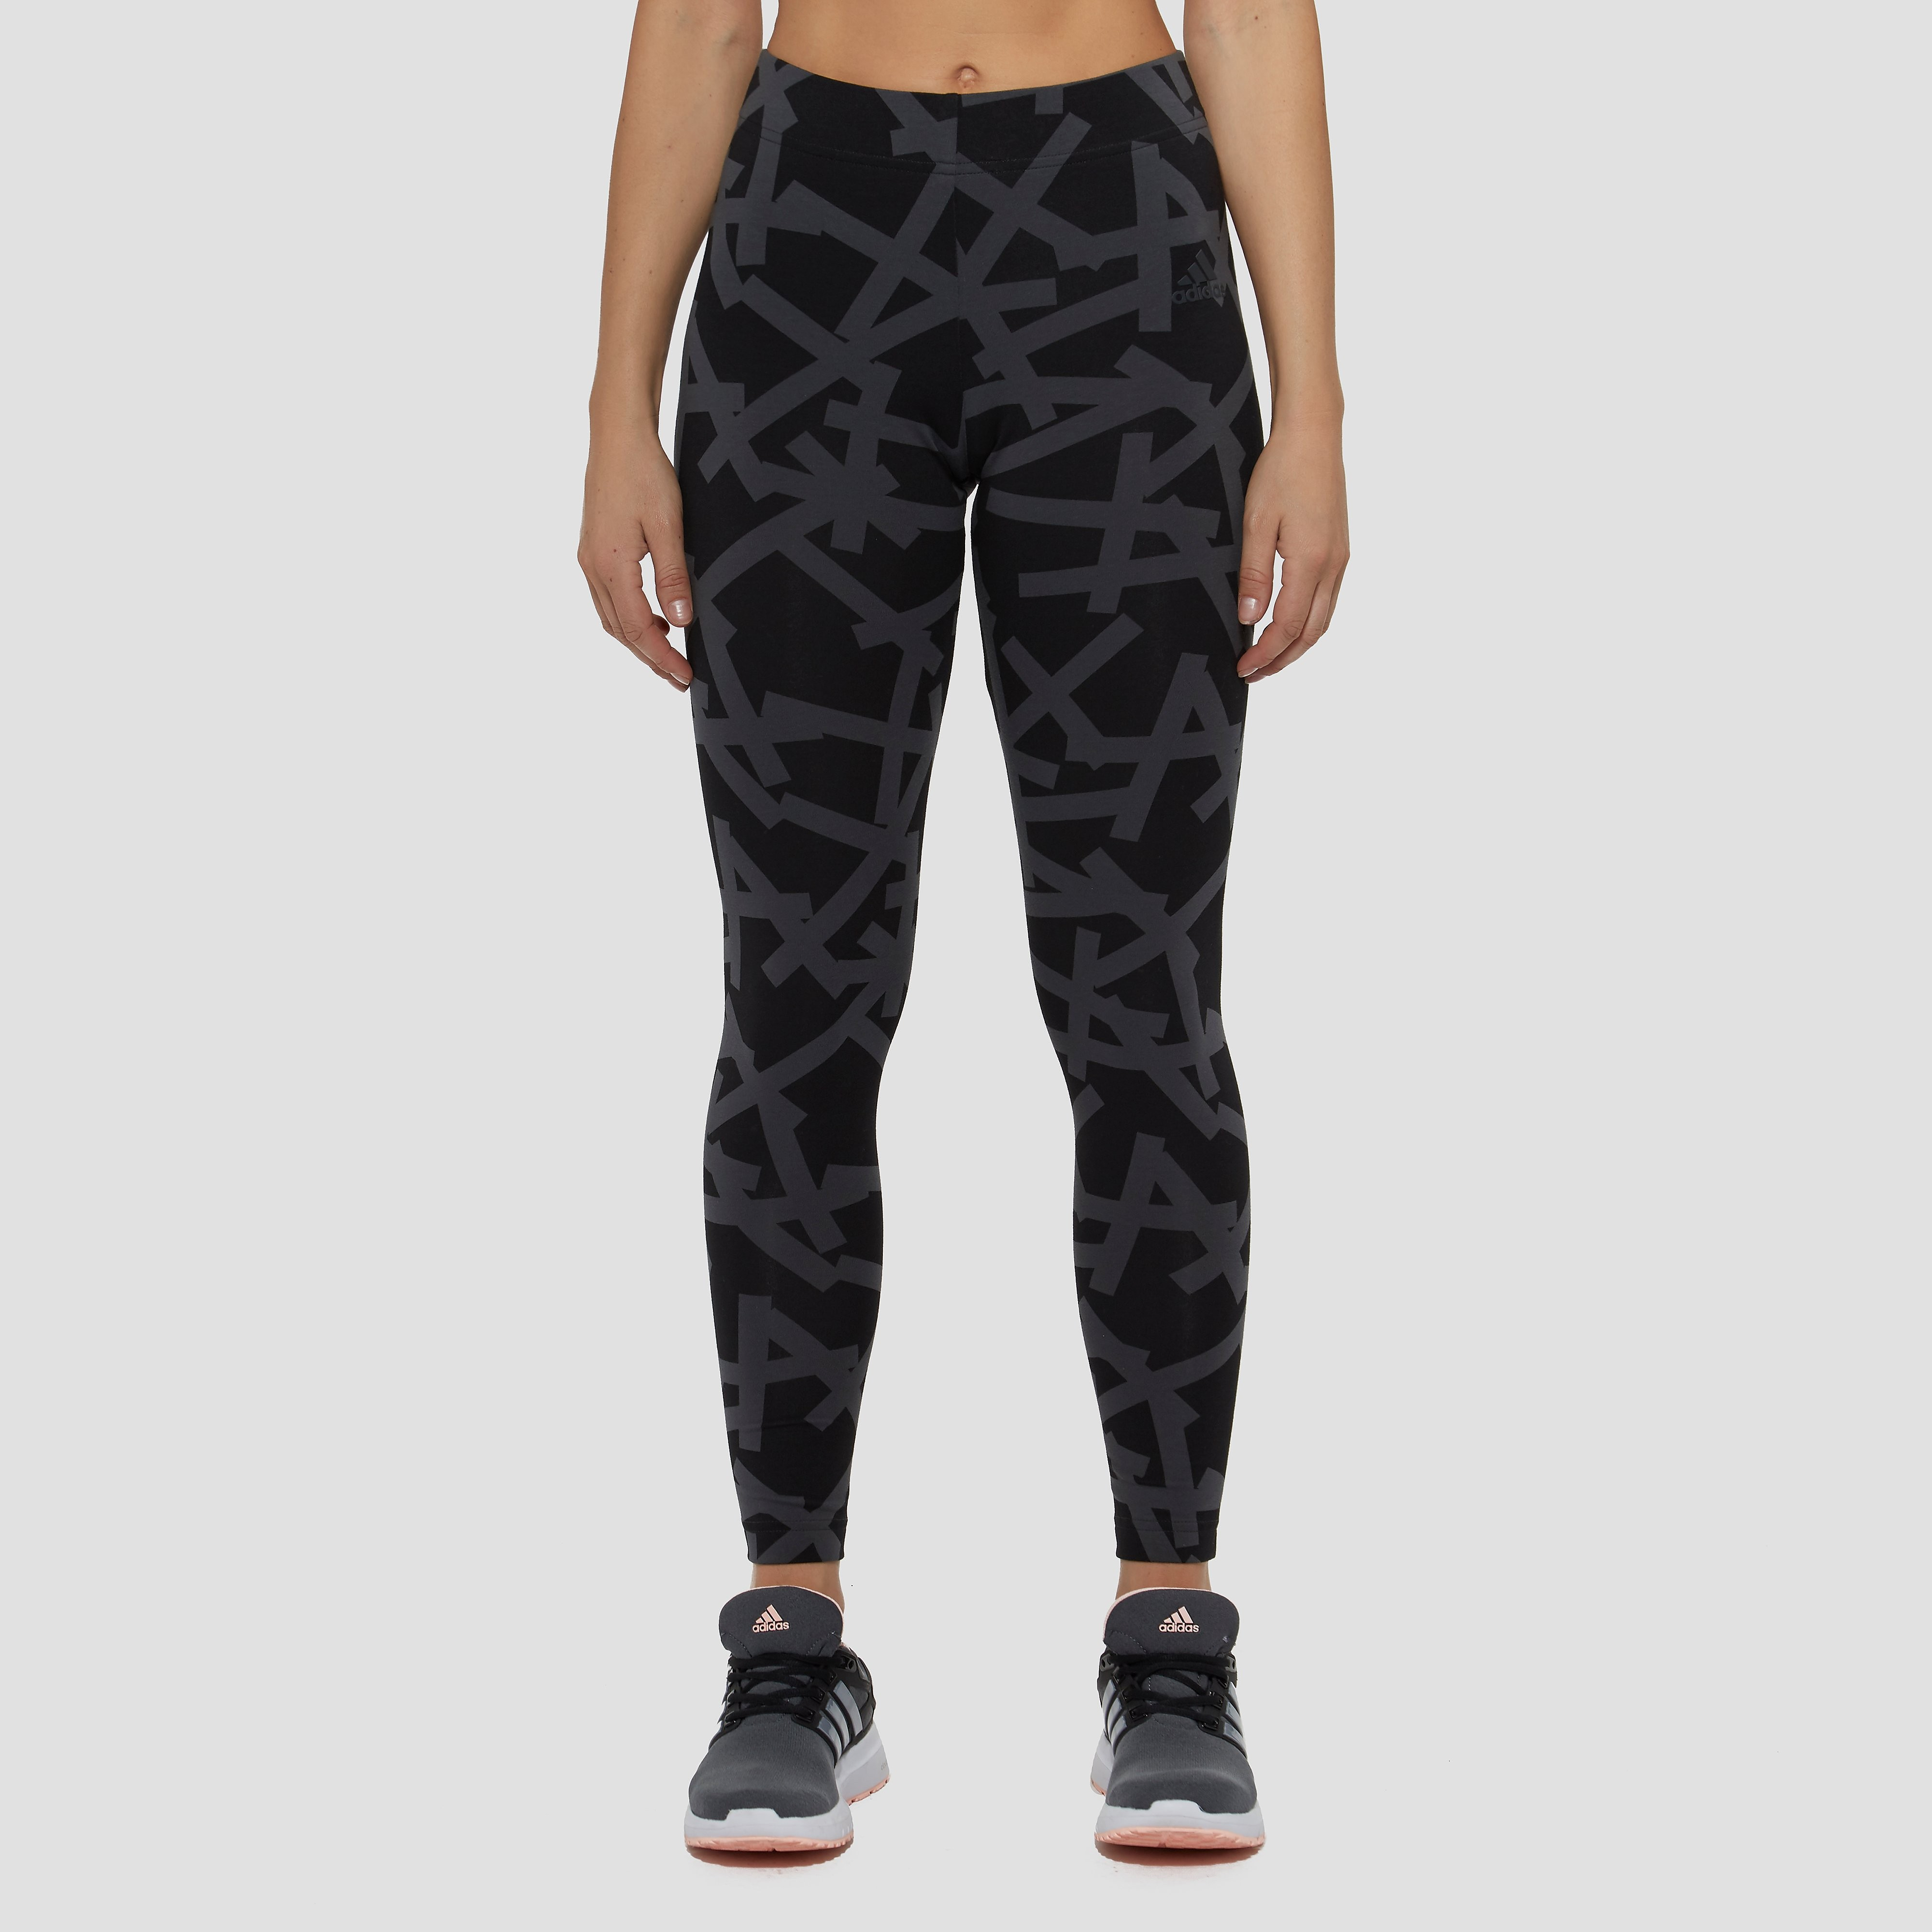 ADIDAS ESSENTIALS ALLOVER-PRINT TIGHT GRIJS DAMES